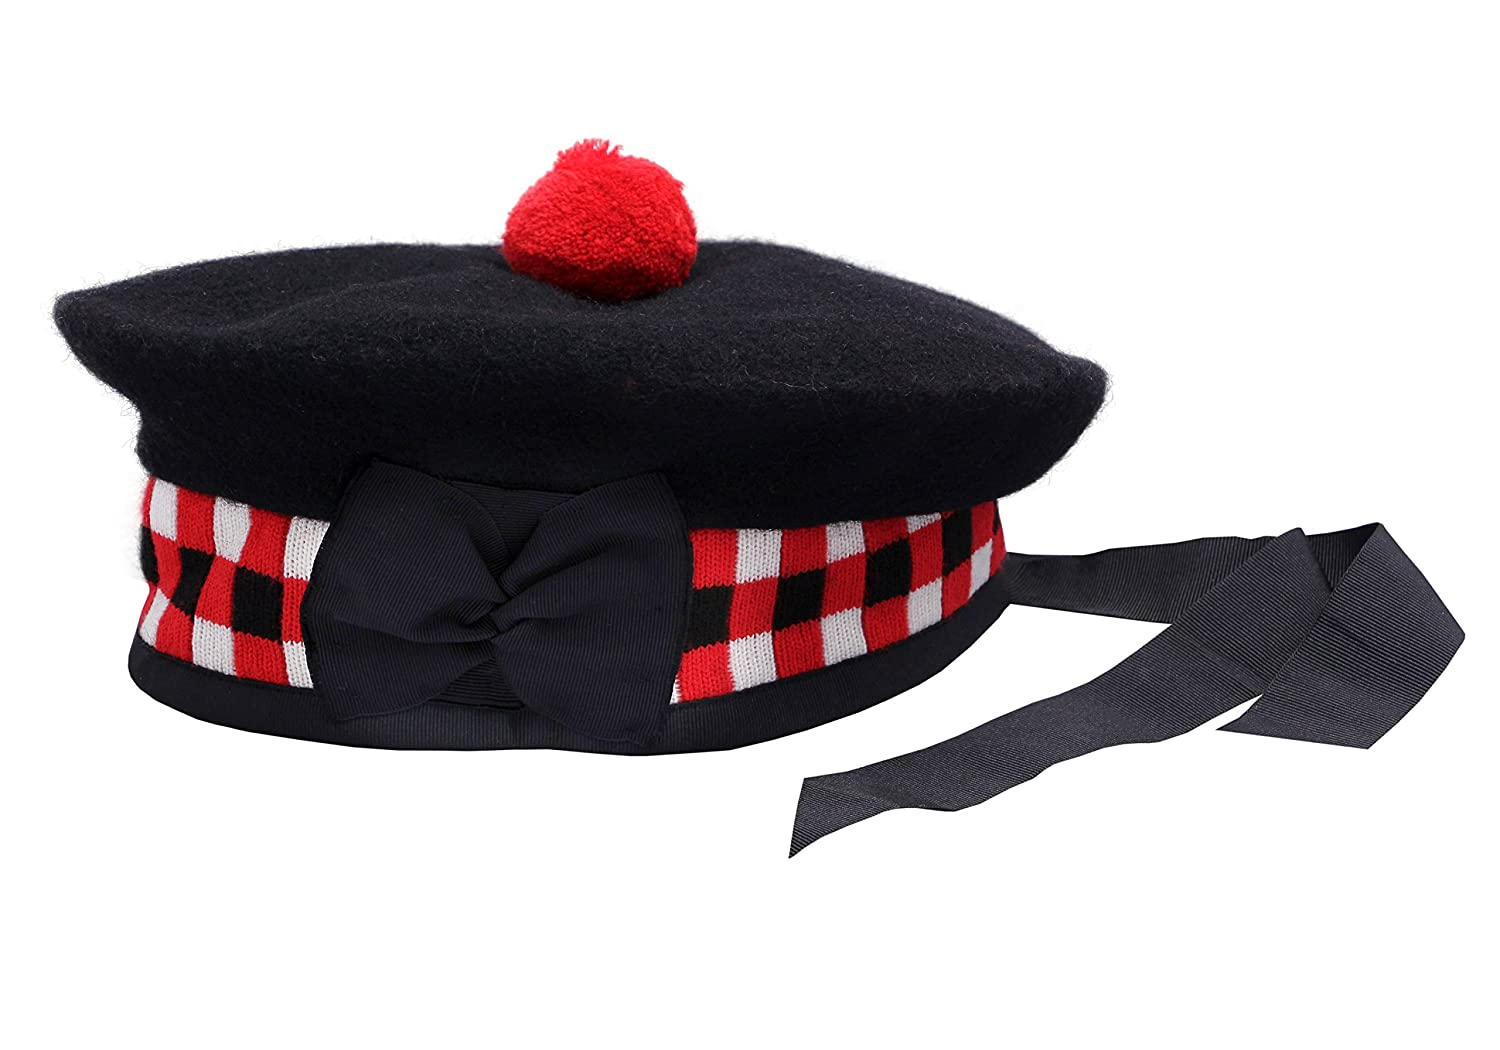 100% Pure Wool Scottish Balmoral Diced Hat Red, White & Black Balmoral Hat NORMAN INTERNATIONAL